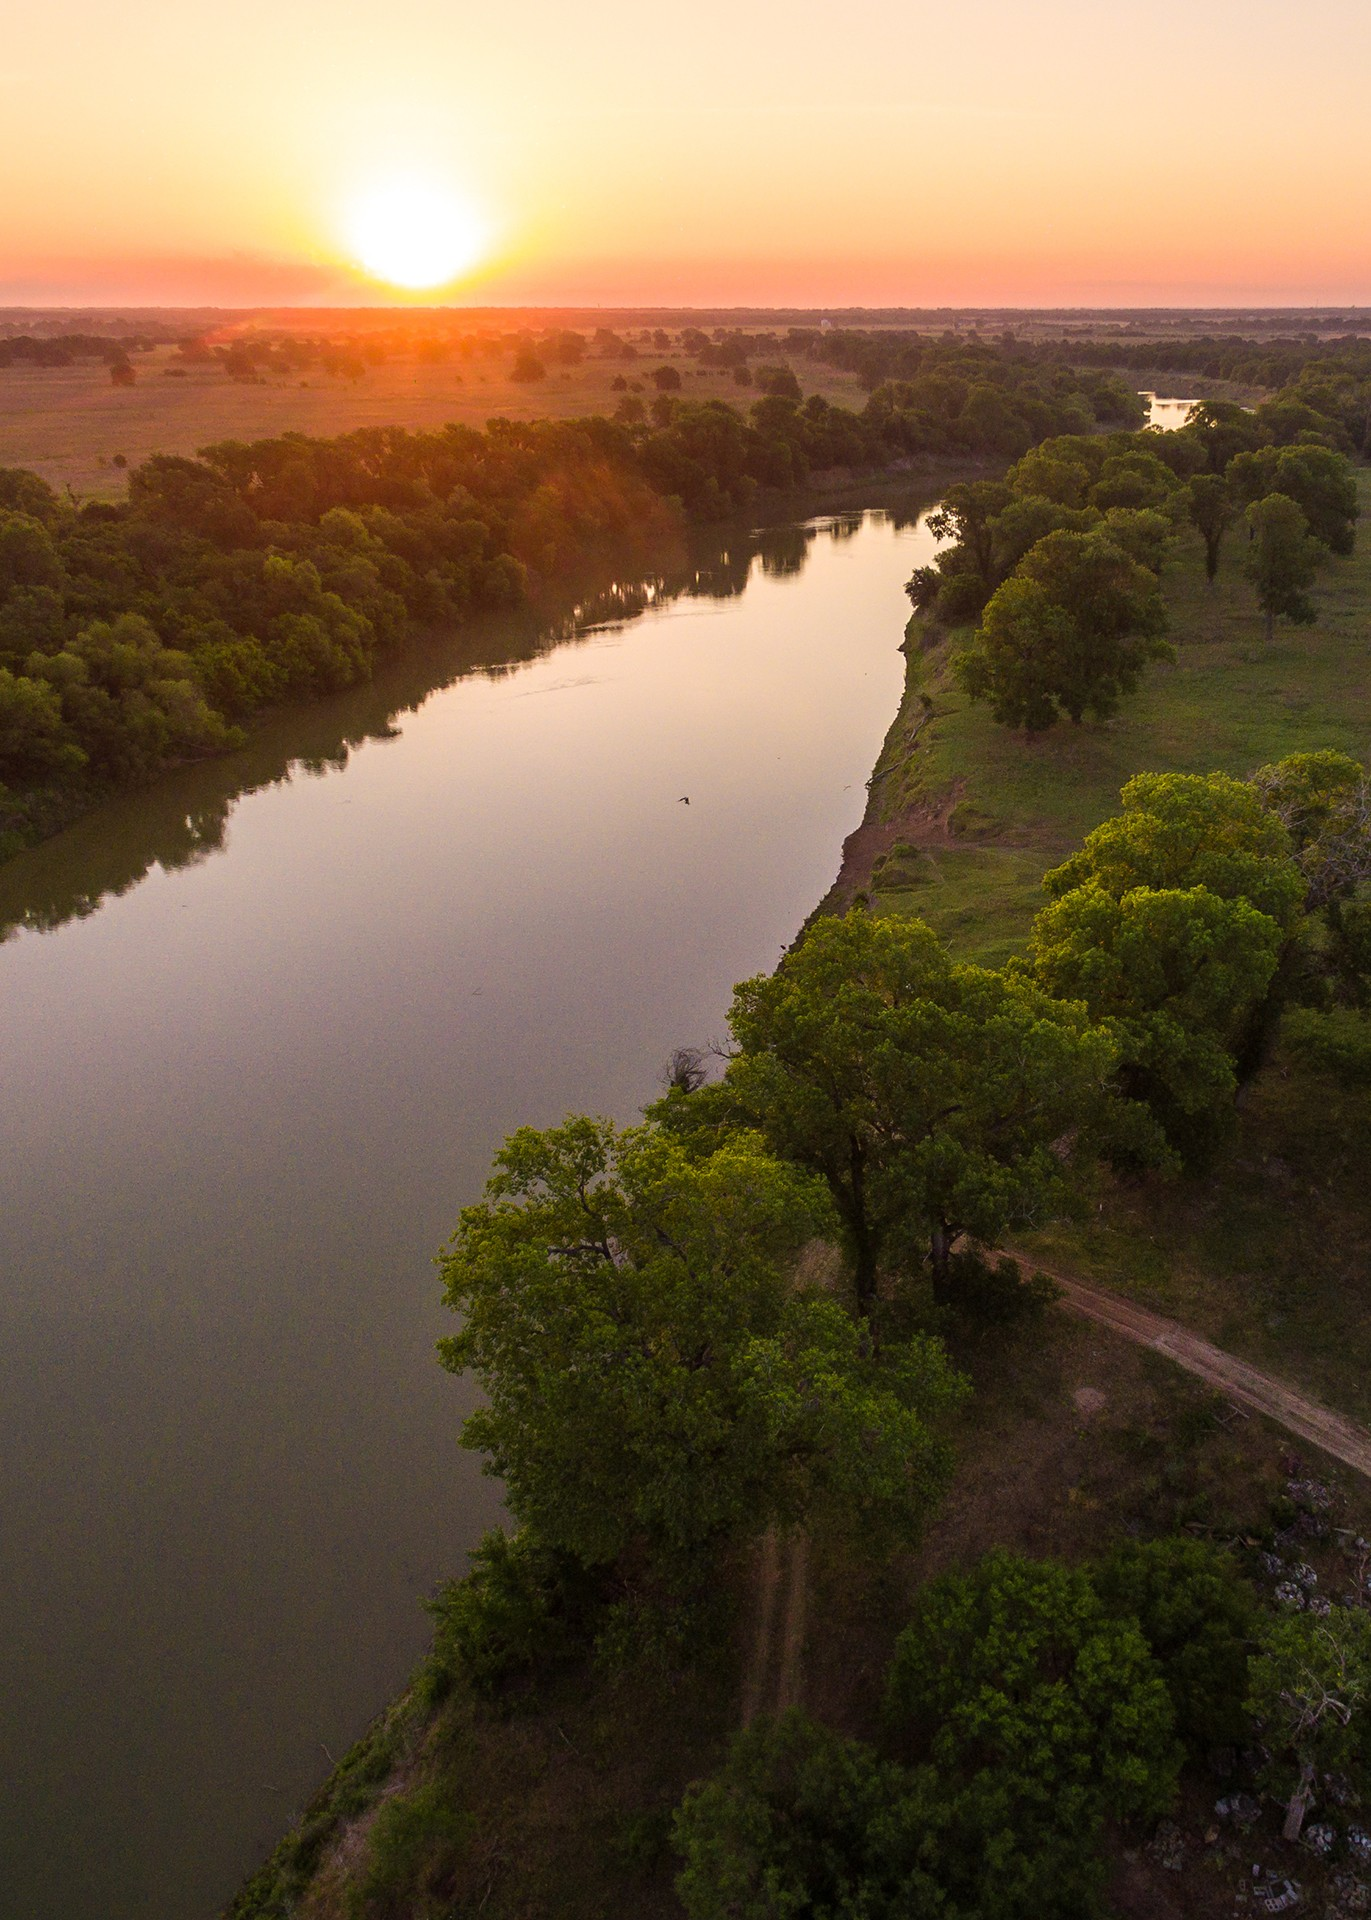 aerial view of sun setting over green pastures and calm river